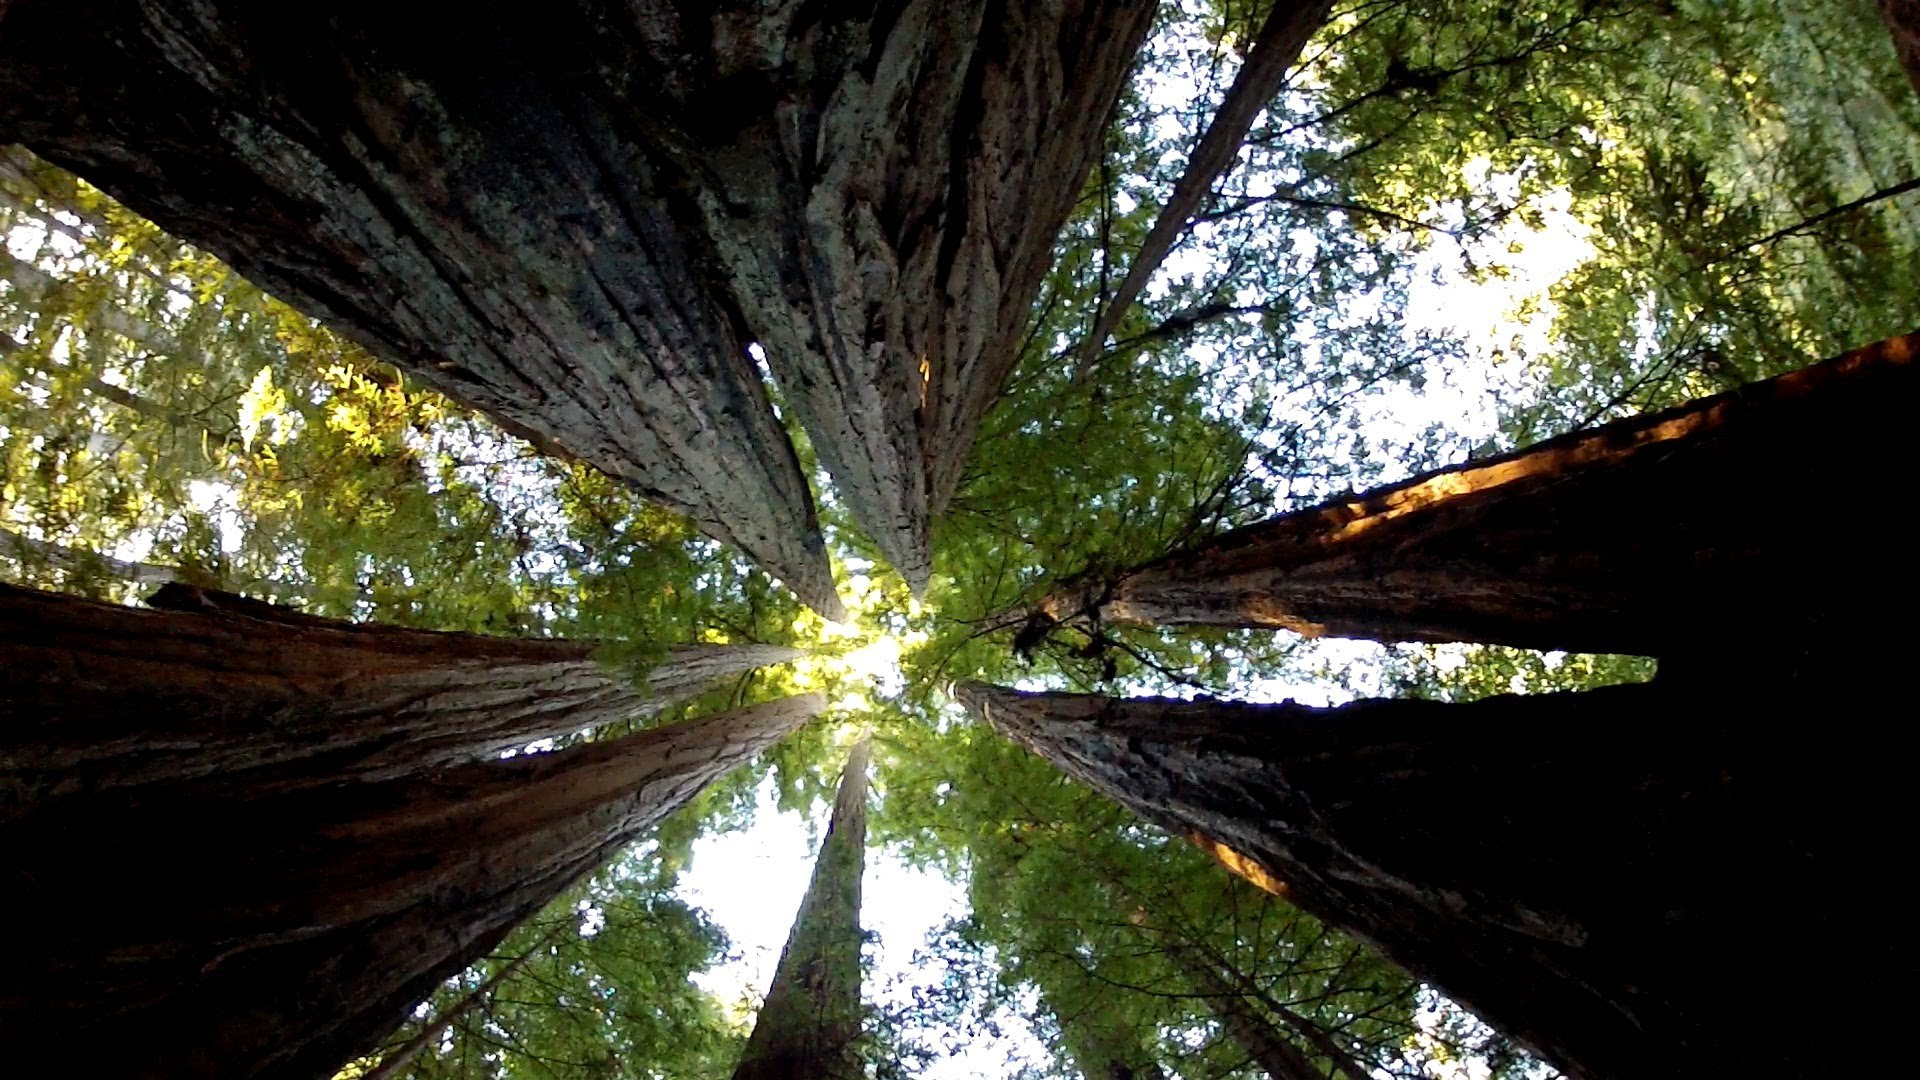 The Most Amazing Thing About Trees - YouTube